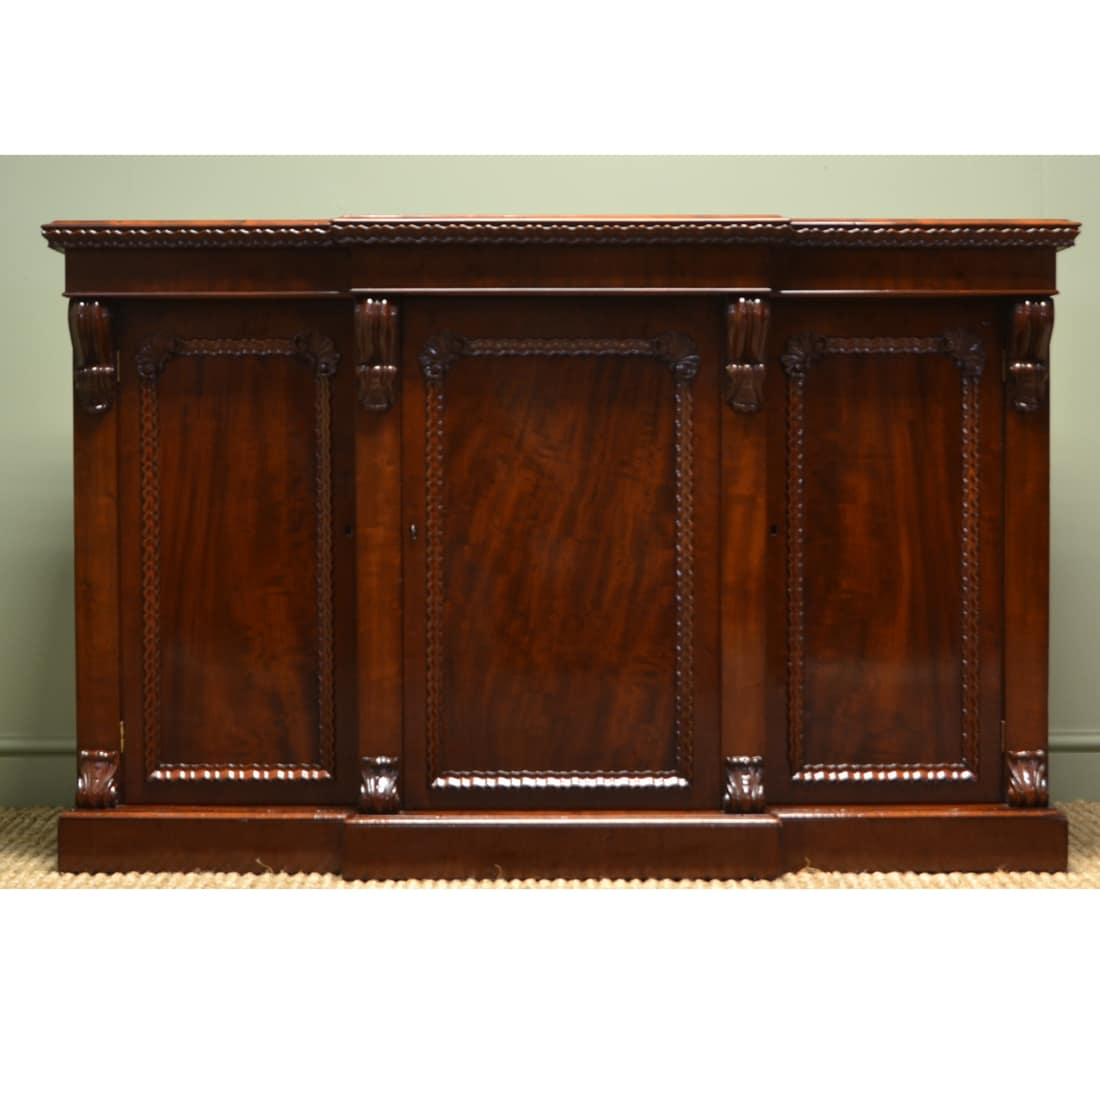 spectacular plum pudding mahogany breakfront william iv antique sideboard antiques world. Black Bedroom Furniture Sets. Home Design Ideas